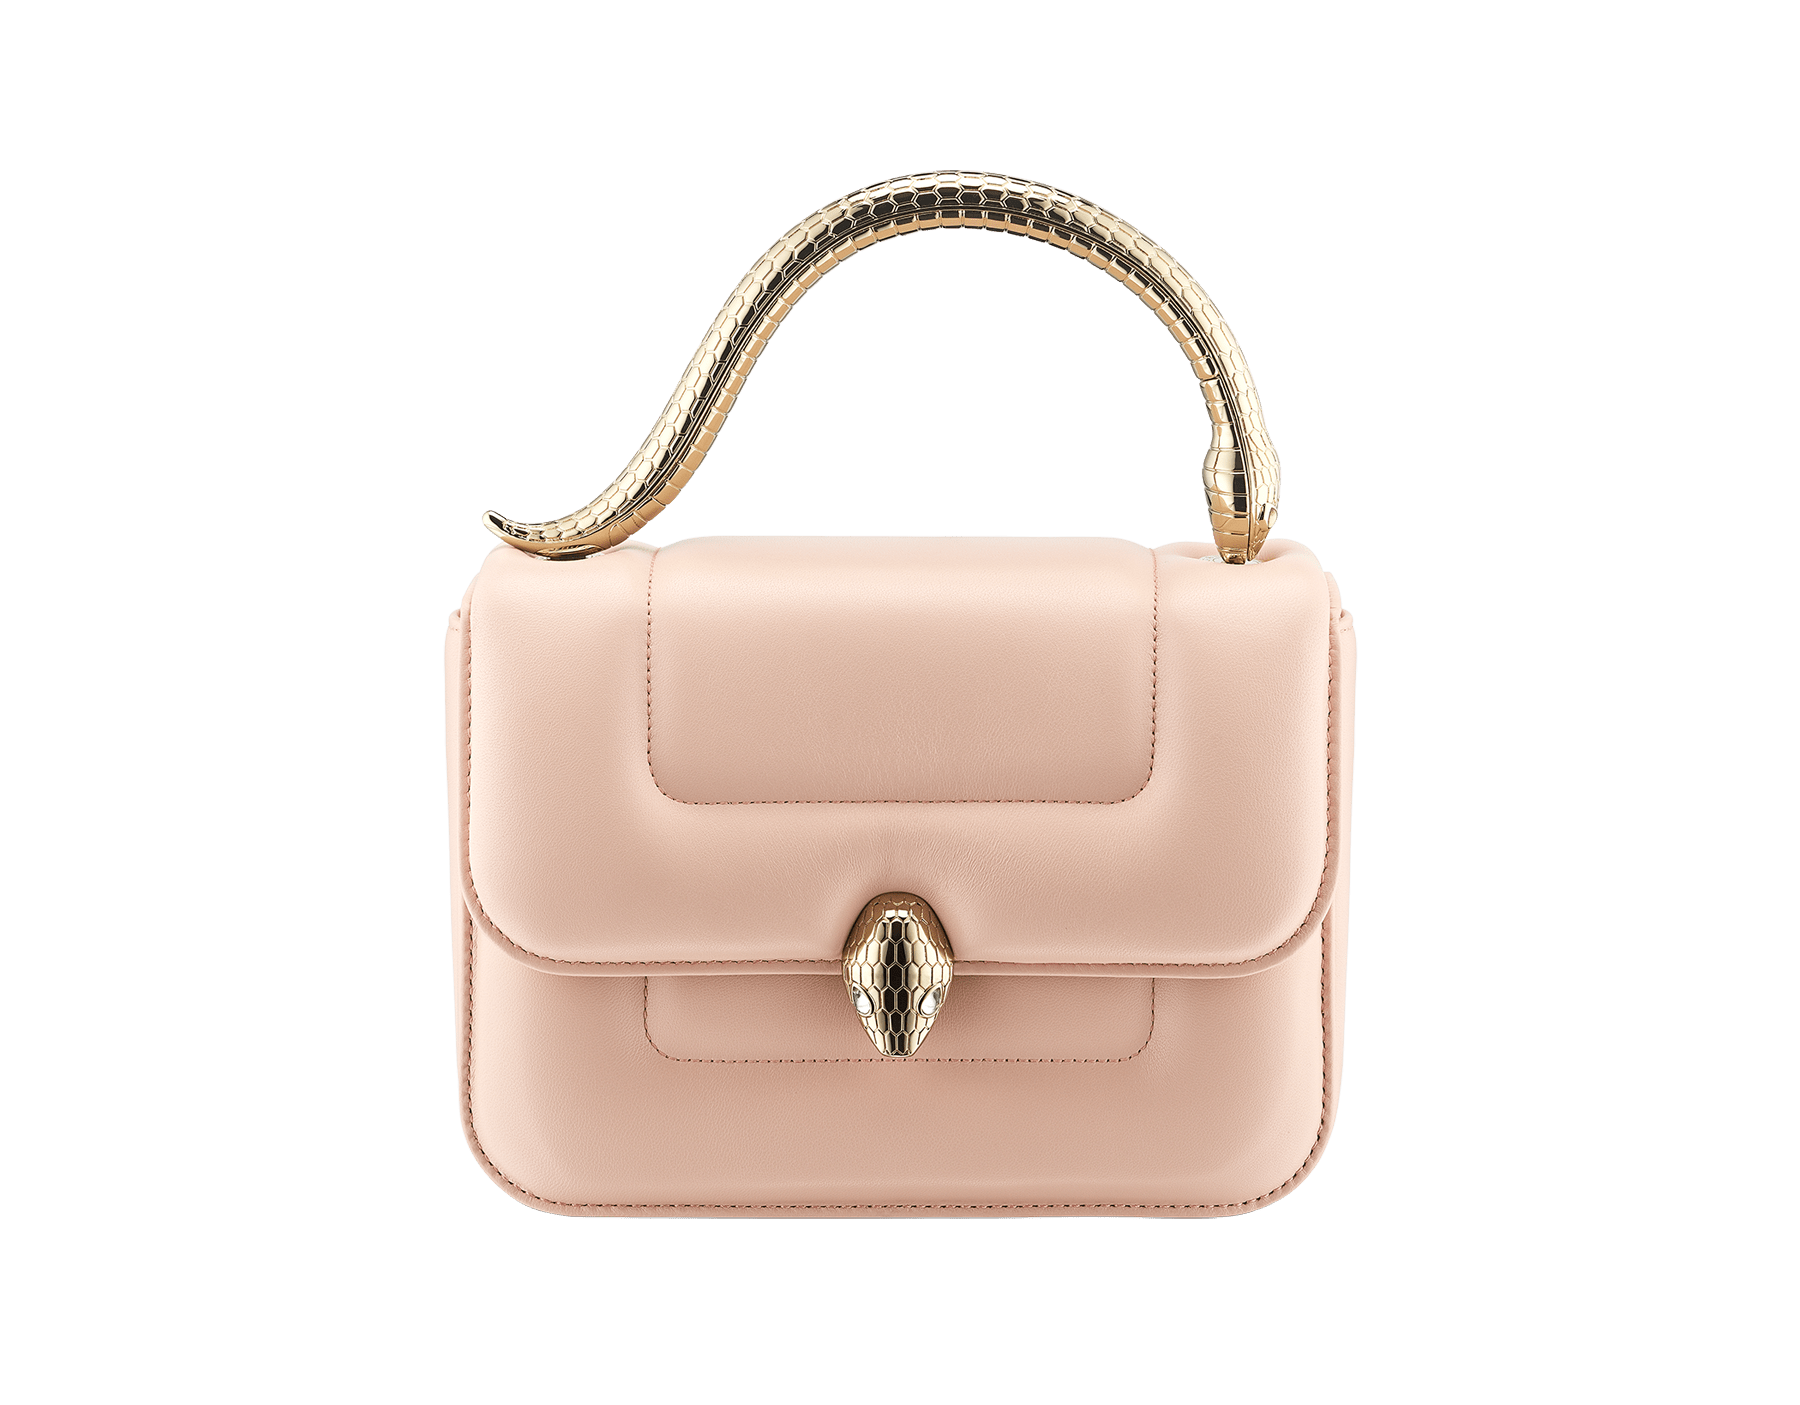 """""""Mary Katrantzou x Bvlgari"""" top handle bag in soft matelassé Aegean Topaz blue nappa leather, with Aegean Topaz blue nappa leather inner lining. New Serpenti head closure in gold-plated brass, finished with seductive crystal eyes. Special Edition. MK-1142 image 1"""